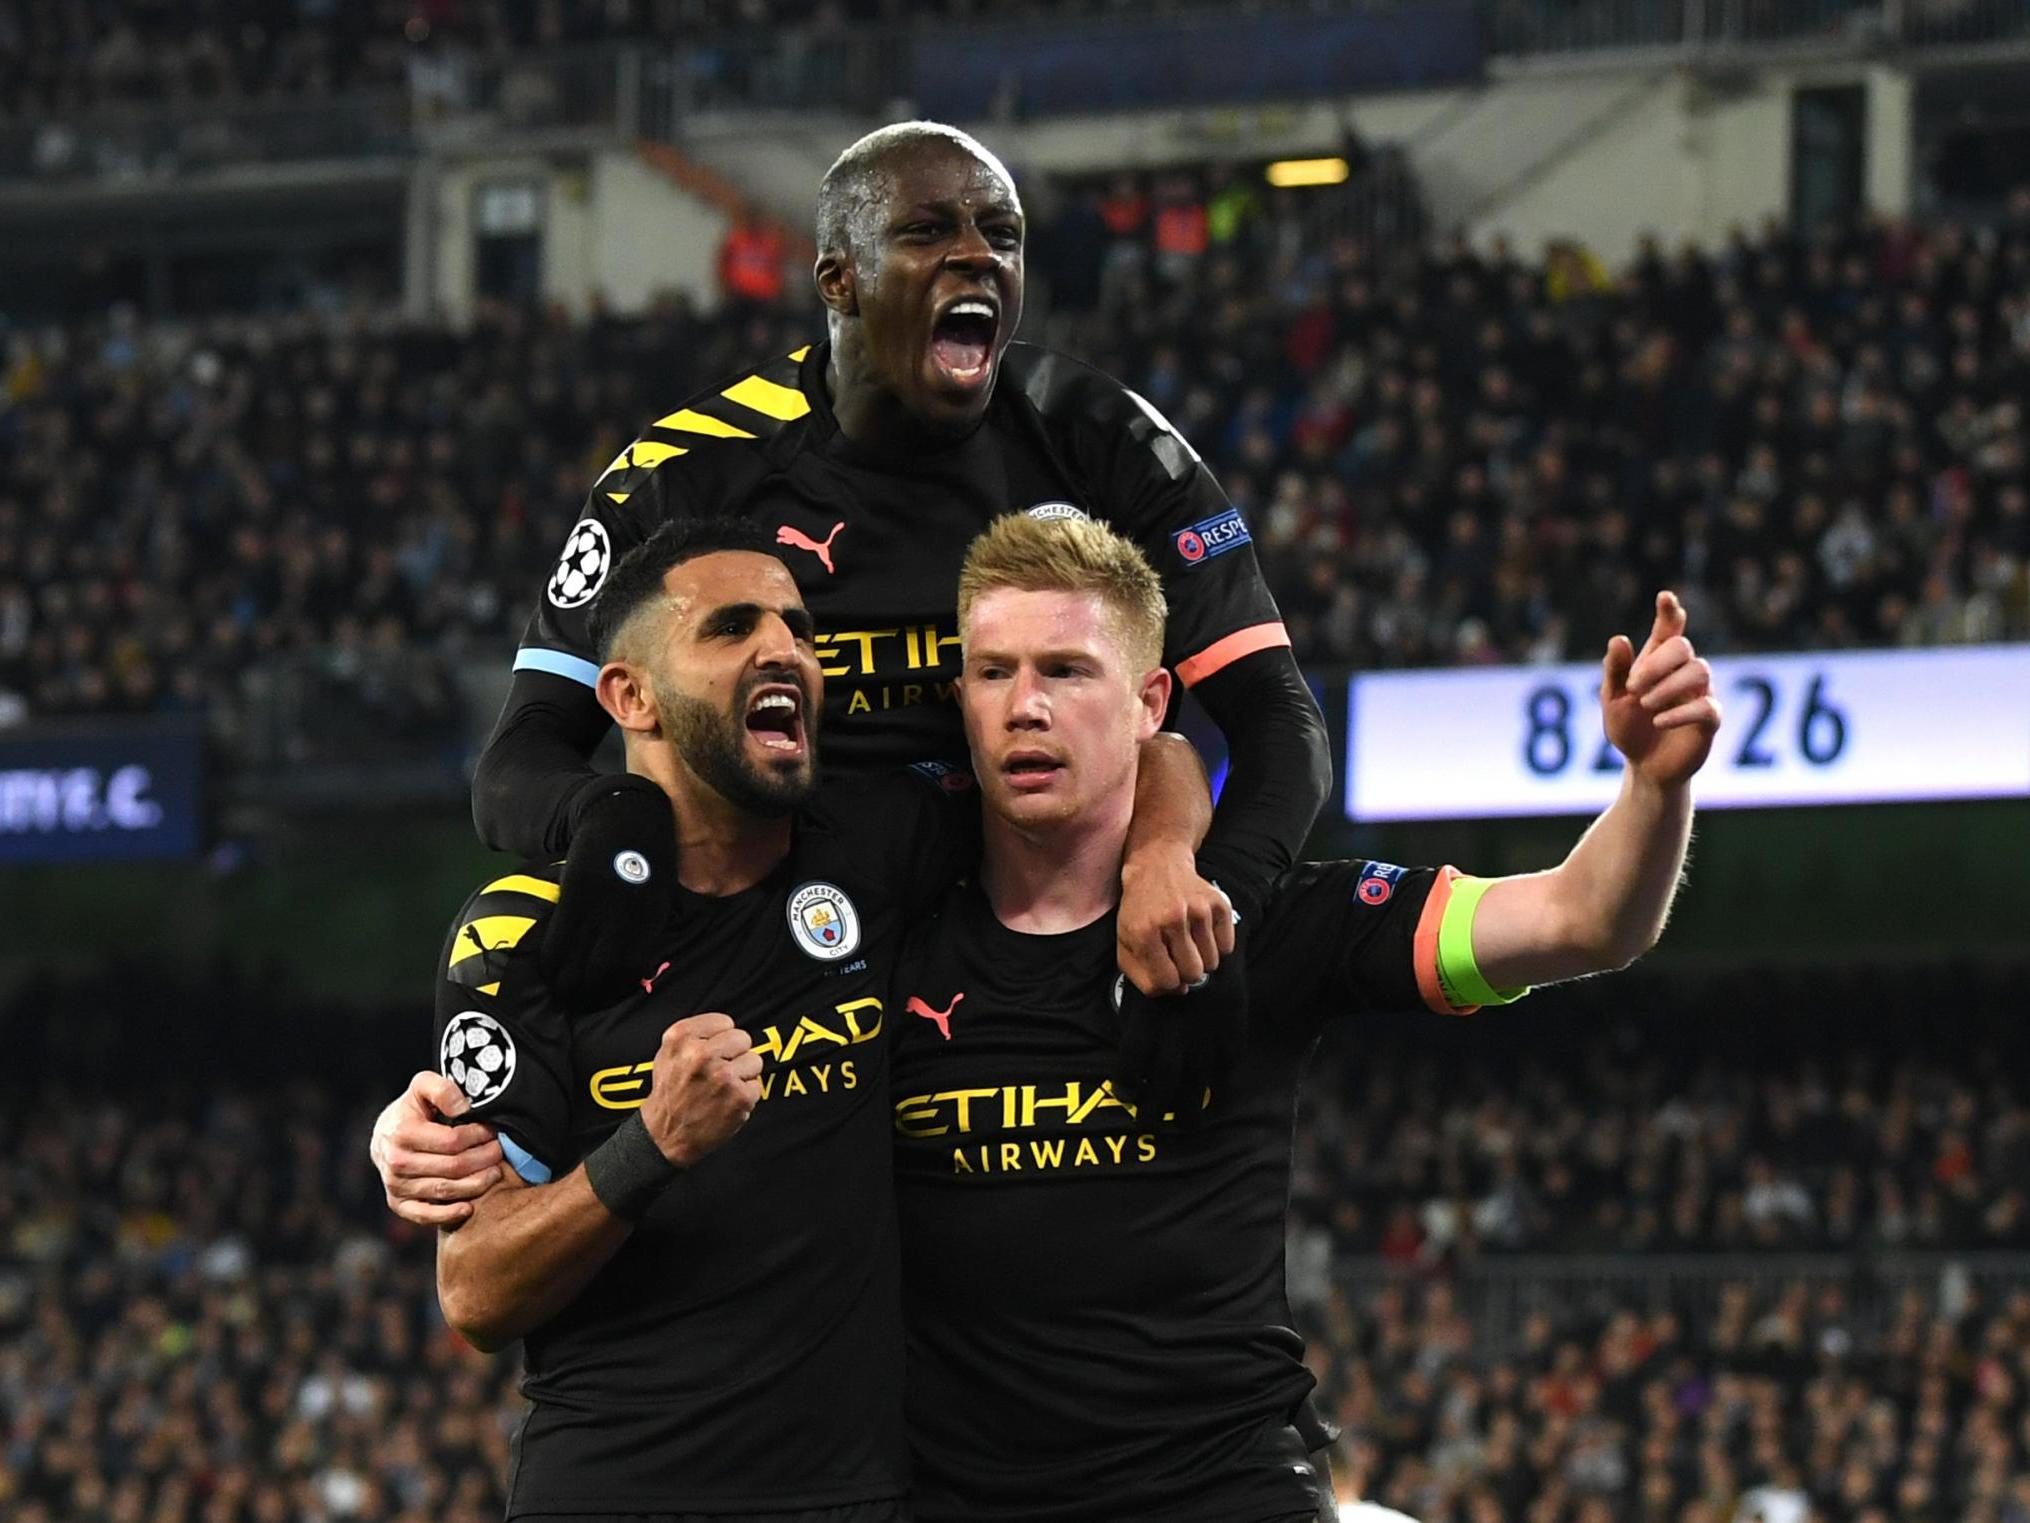 Five things we learned as City beat Madrid at the Bernabeu